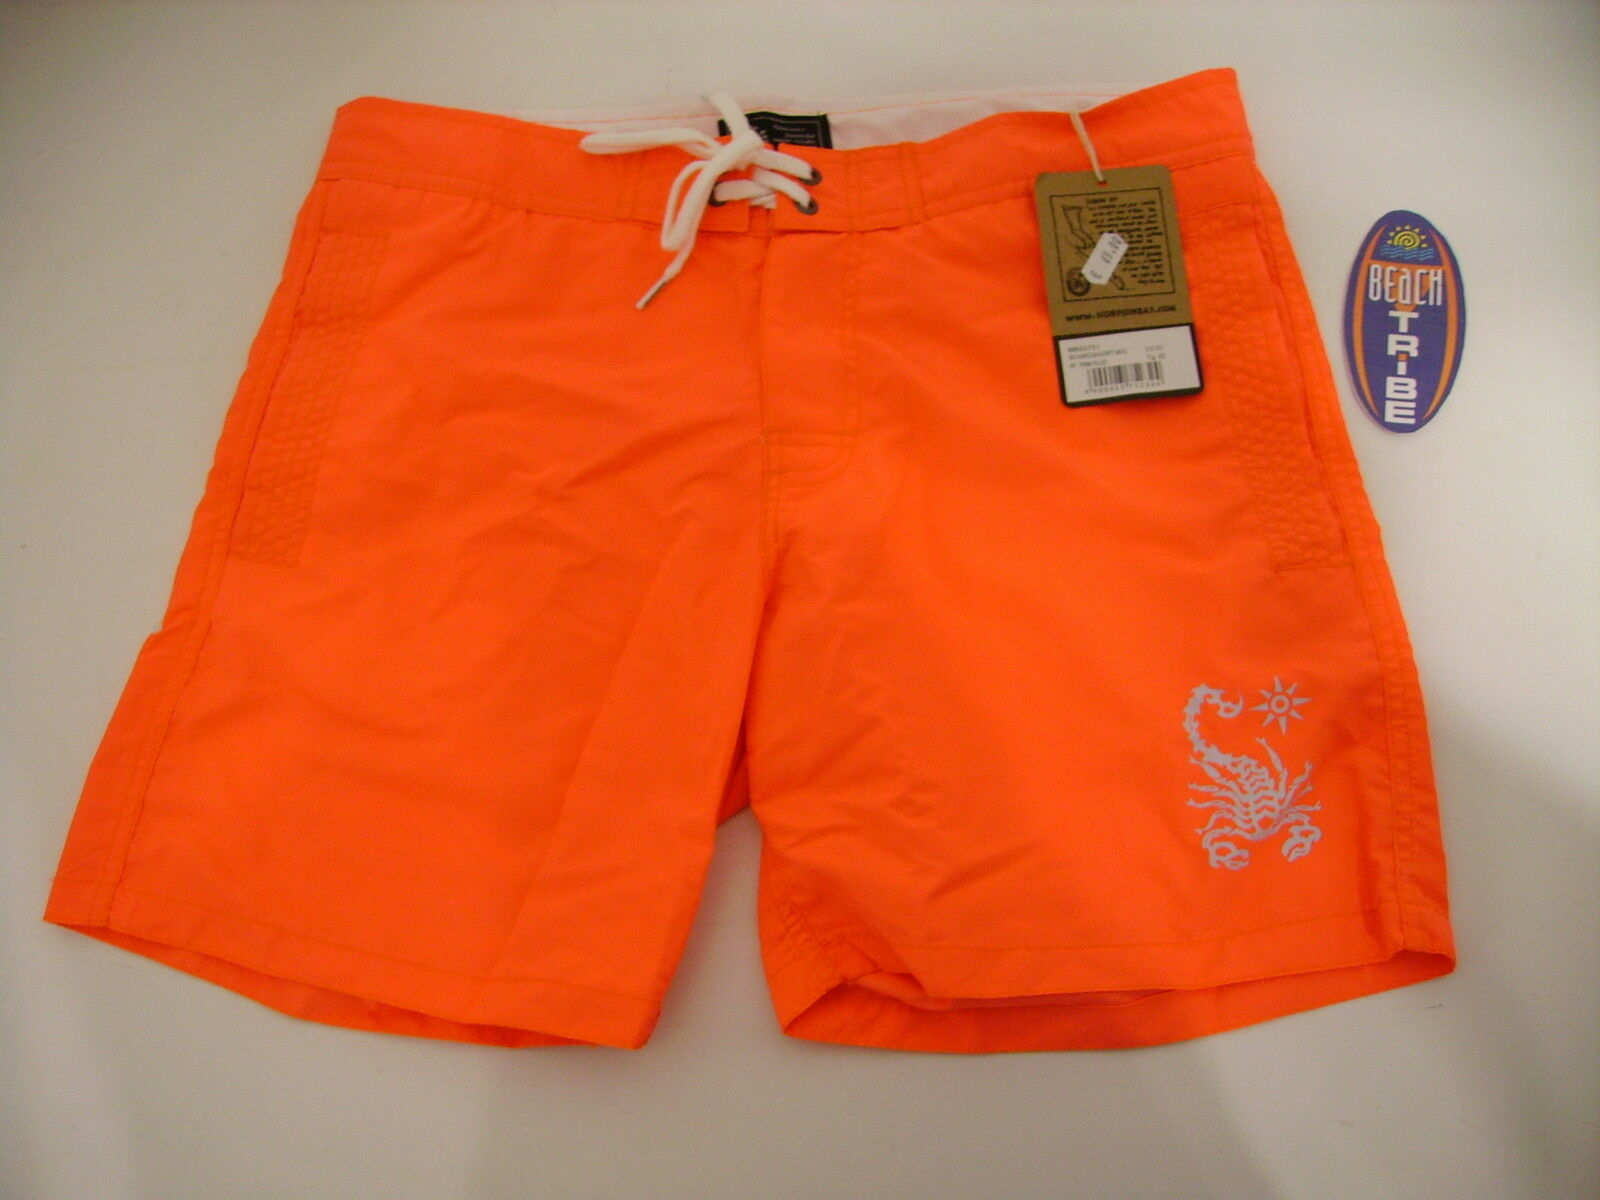 SCORPION BAY BOARDSHORT SHORTS SEA COSTUME MBS2751 67 PINK FLUO SIZE 36